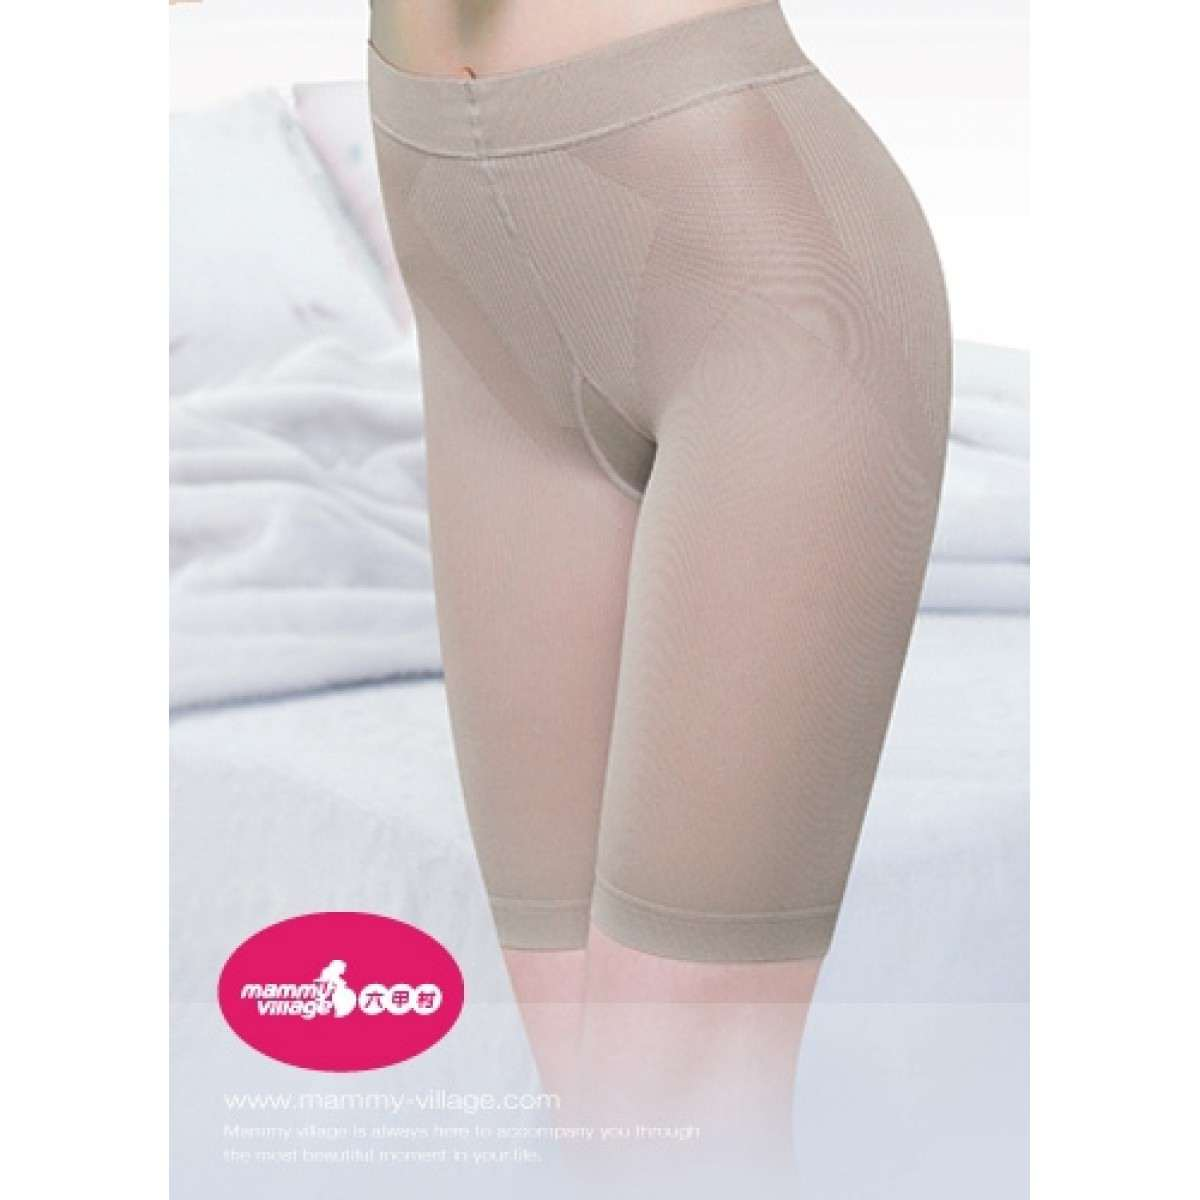 3055a52b73102 Availability  In Stock  Product Code  MV Postpartum Thigh Shaper  Brand  mammy  village